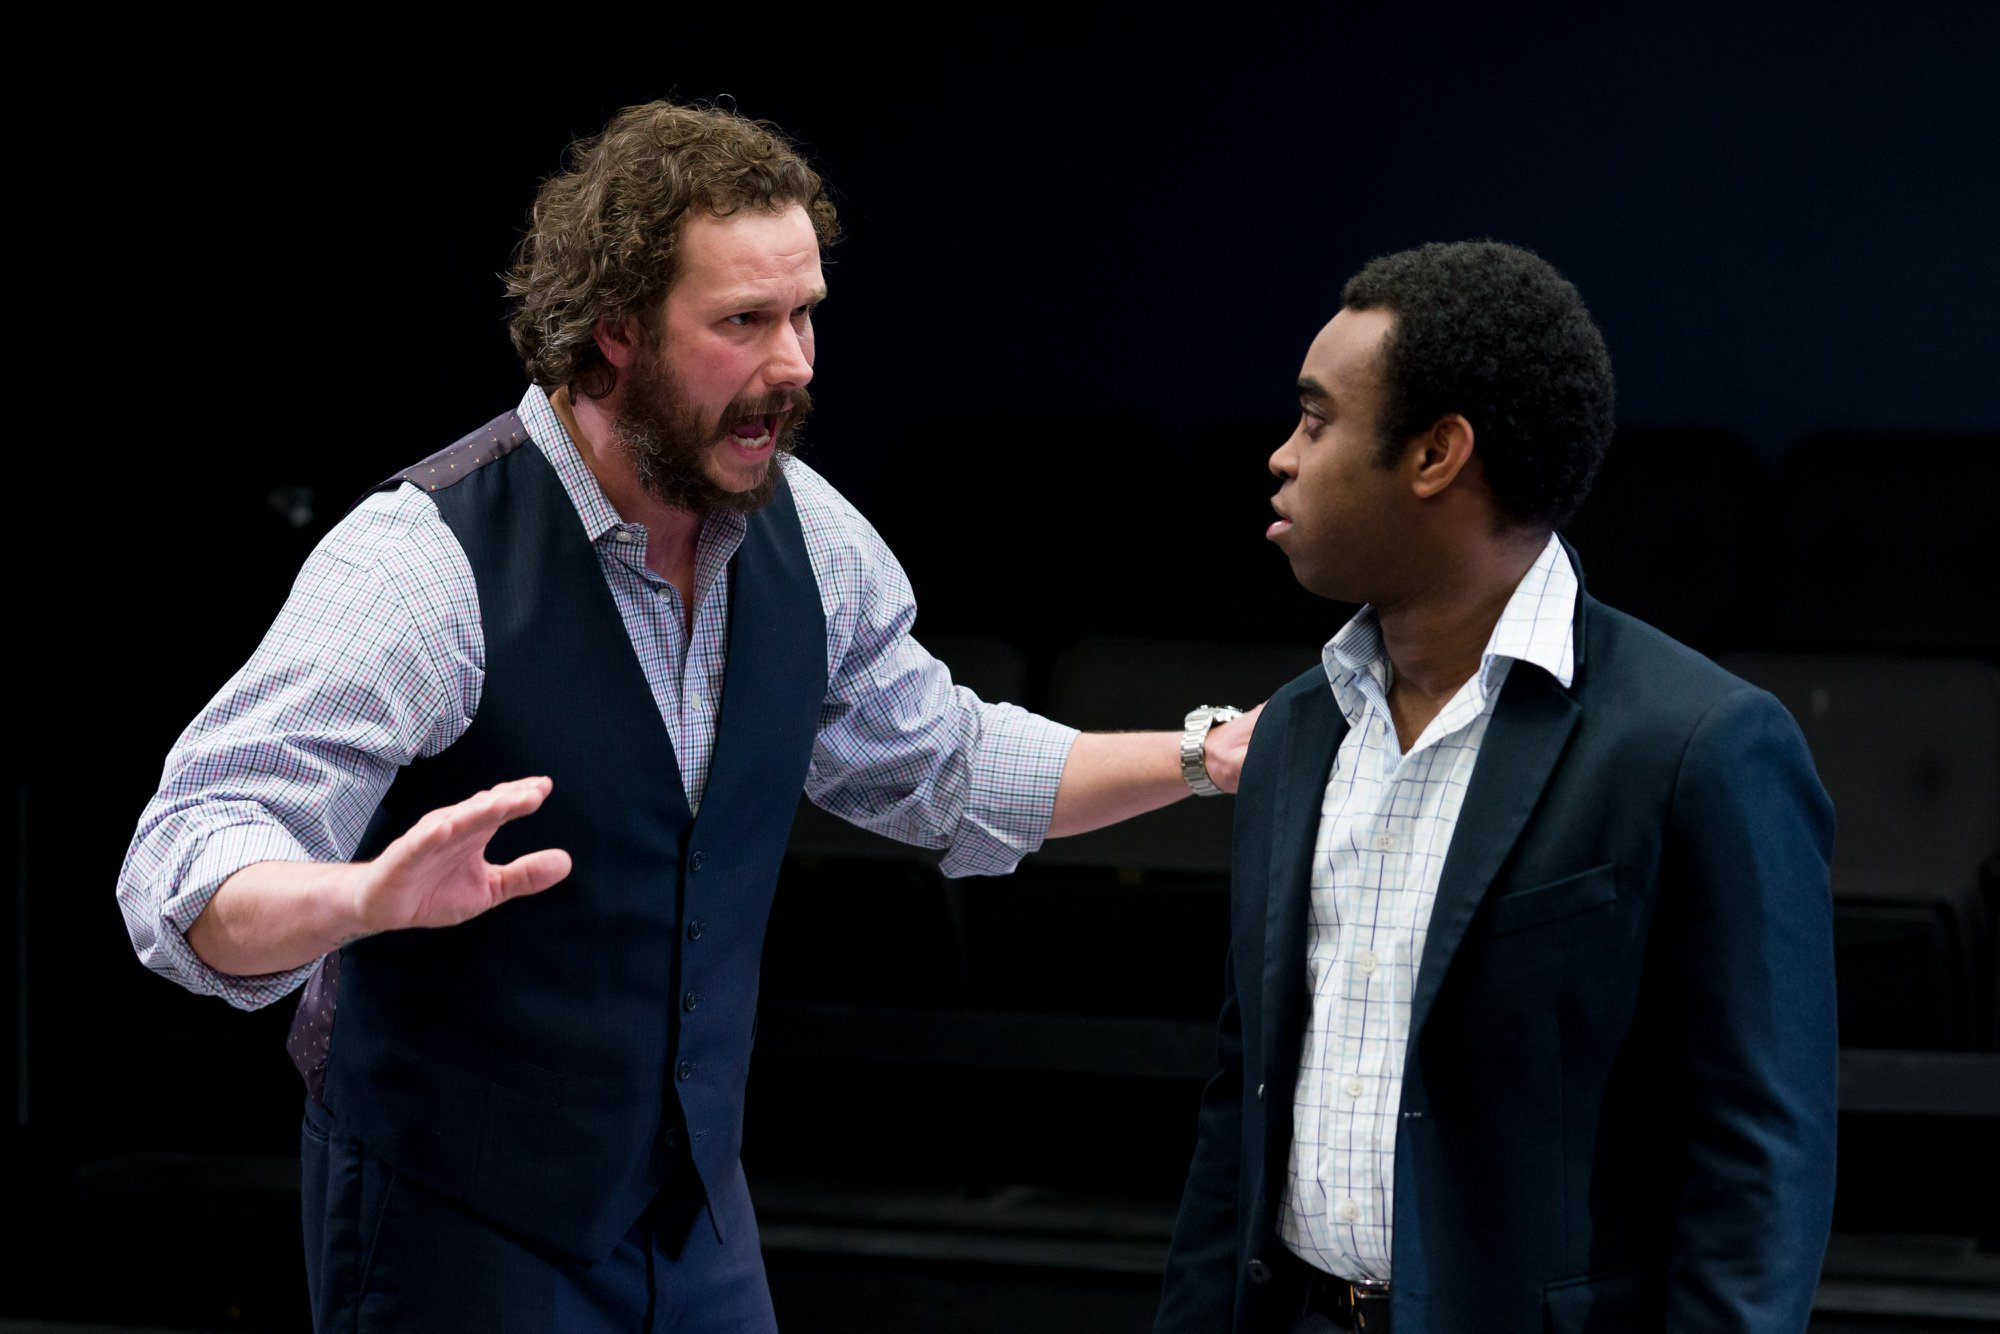 Anthony Goes and Marc Pierre in Walt McGough's  Brawler  at the Kitchen Theatre Company, directed by M. Bevin O'Gara. Photo: Dave Burbank